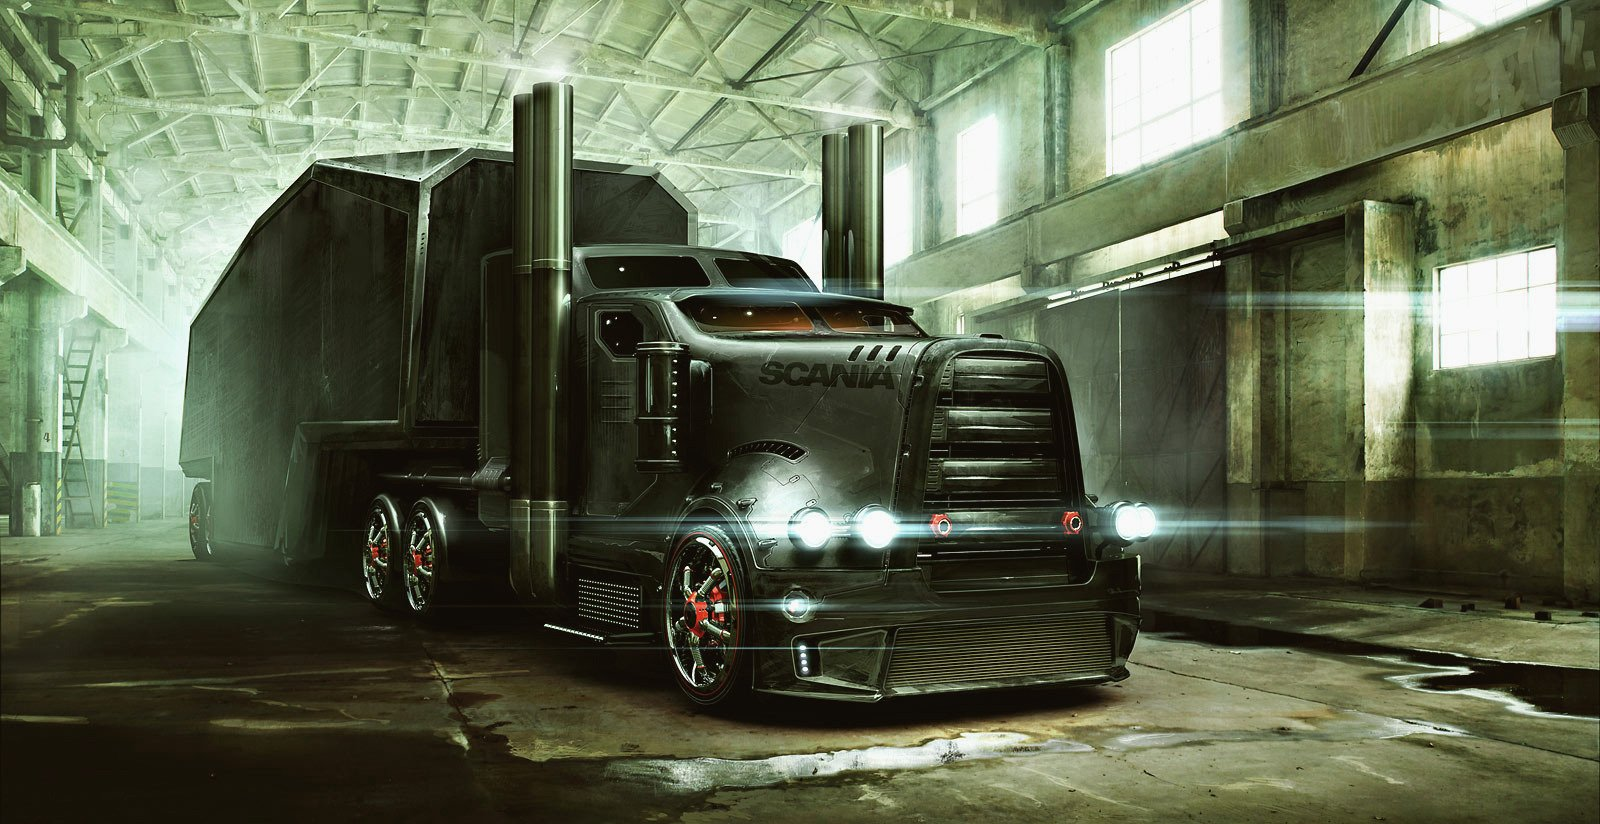 d72a90caf 316 Truck HD Wallpapers | Background Images - Wallpaper Abyss